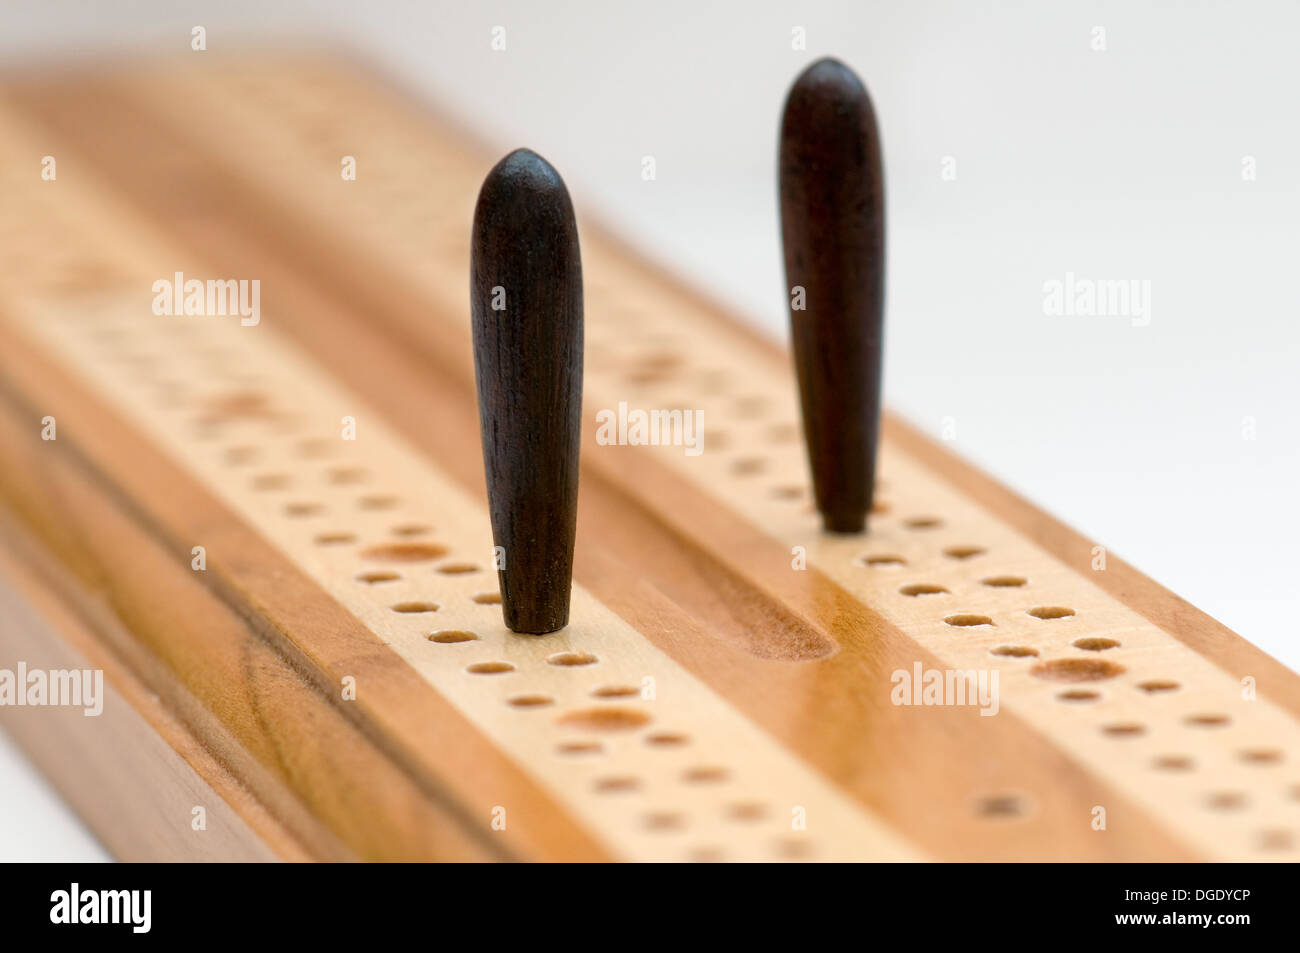 Two pegs on wooden cribbage board used for scoring in a crib card game - Stock Image